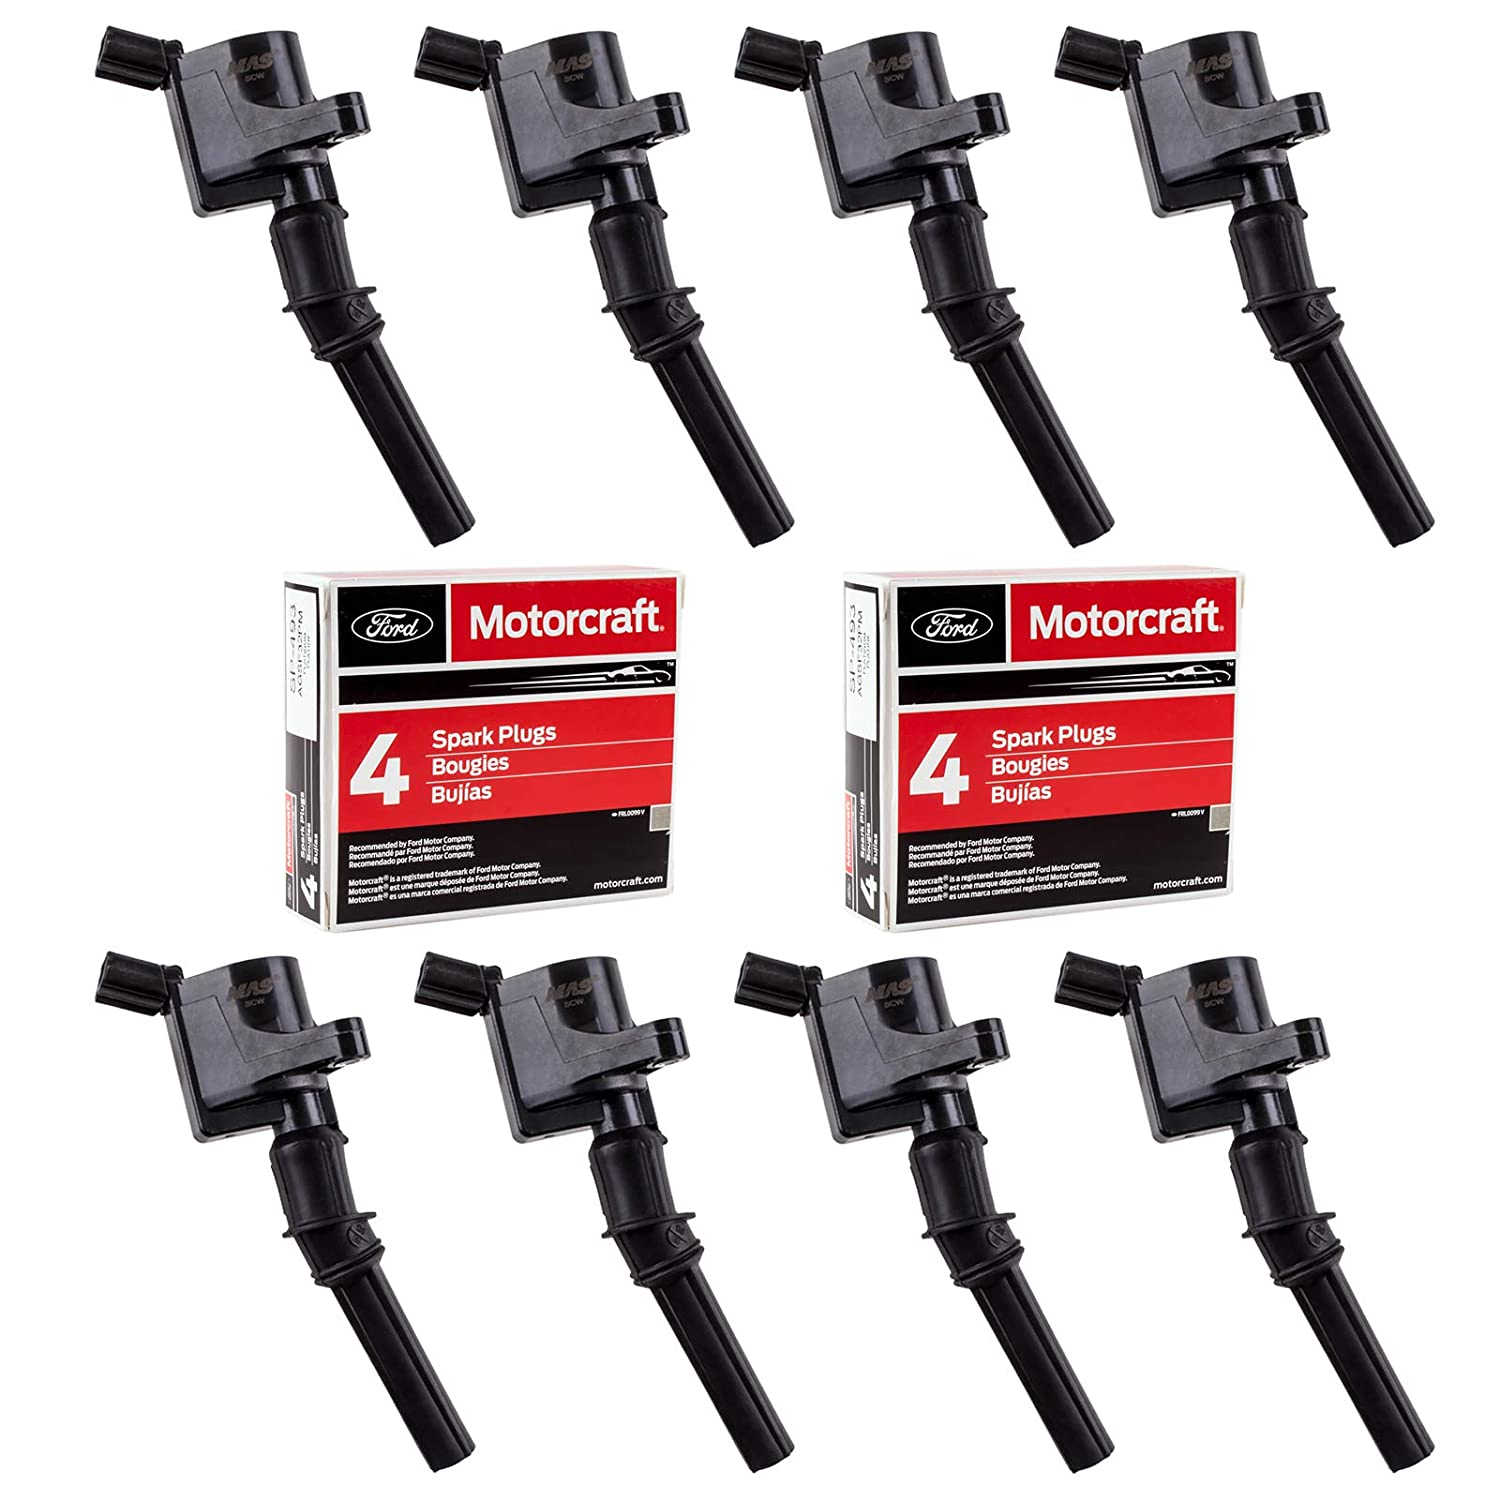 MAS Set of 8 Ignition Coil DG508 and Motorcraft Spark Plug SP493 for Ford Lincoln Mercury 4.6L engines DG457 DG472 DG491 F523 3W7Z12029AA 1L2U12029AA ...